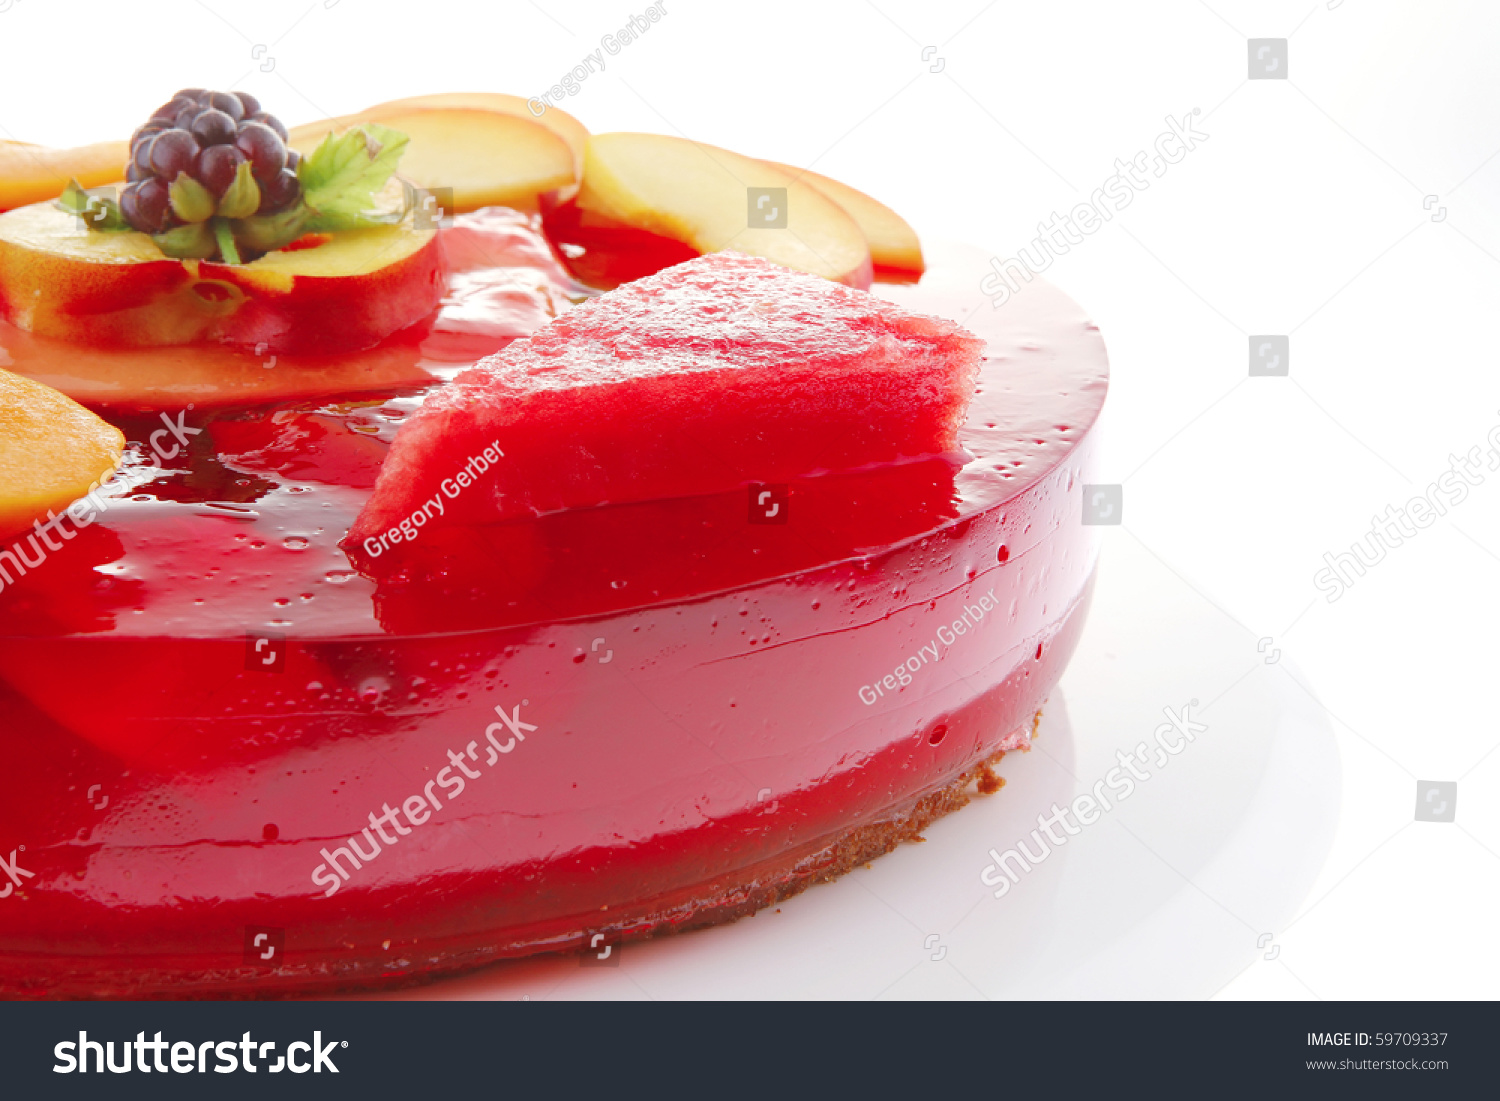 Red Jelly Cake Recipe: Sweet Cold Red Jelly Cake With Peach And Nectarine Stock